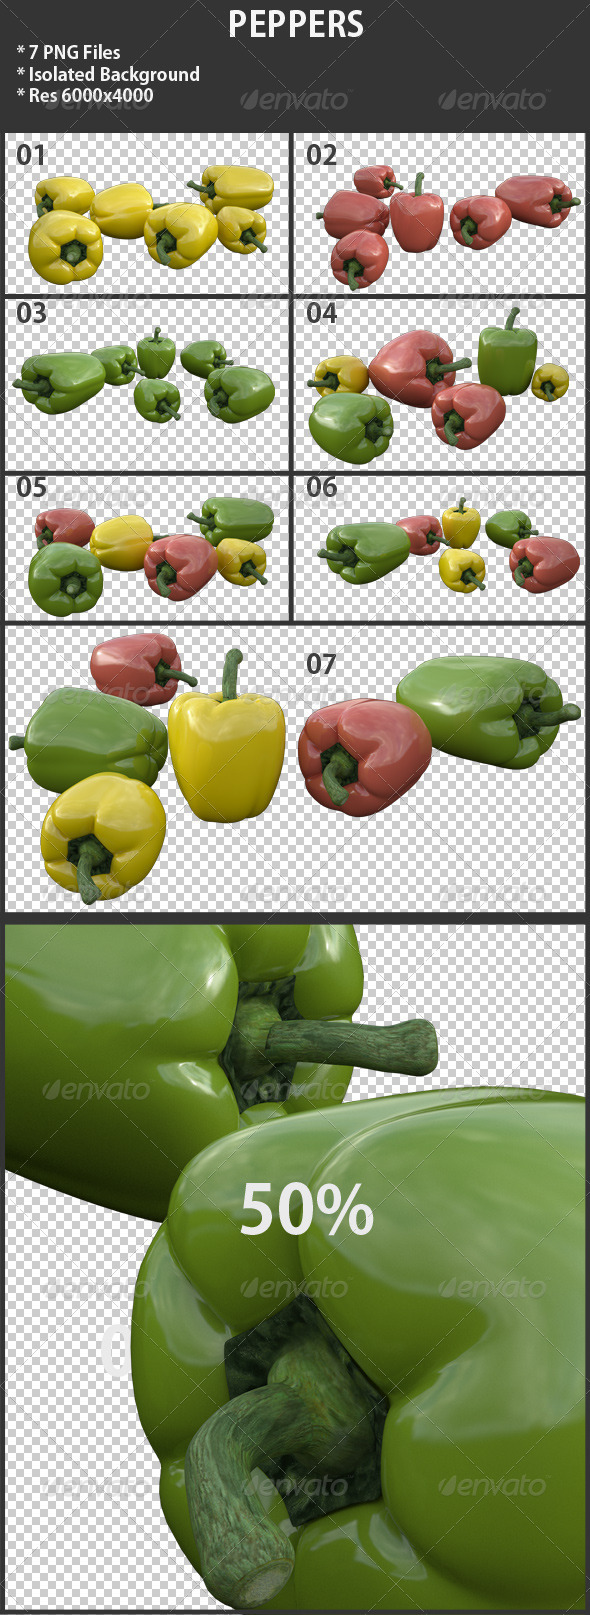 Peppers - 3D Renders Graphics